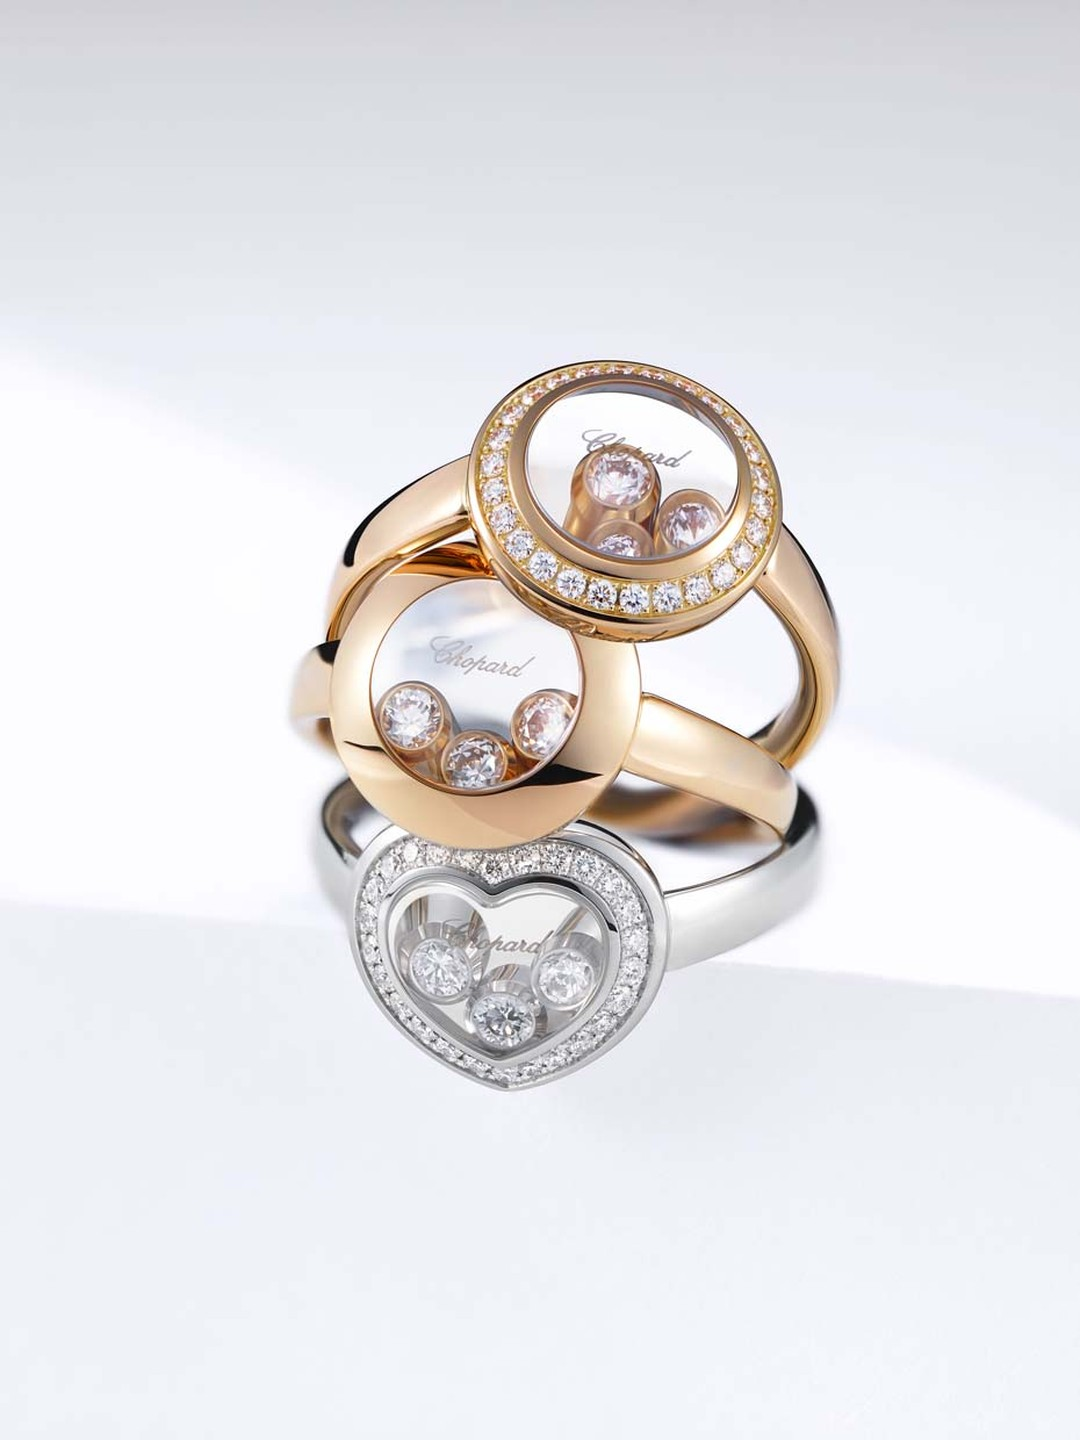 Chopard Happy Curves collection features two cambered sapphire crystals which contain the freely moving diamonds, magnifying the beauty of the precious stones and, depending on the angle, playing with the dimensions of the diamonds.